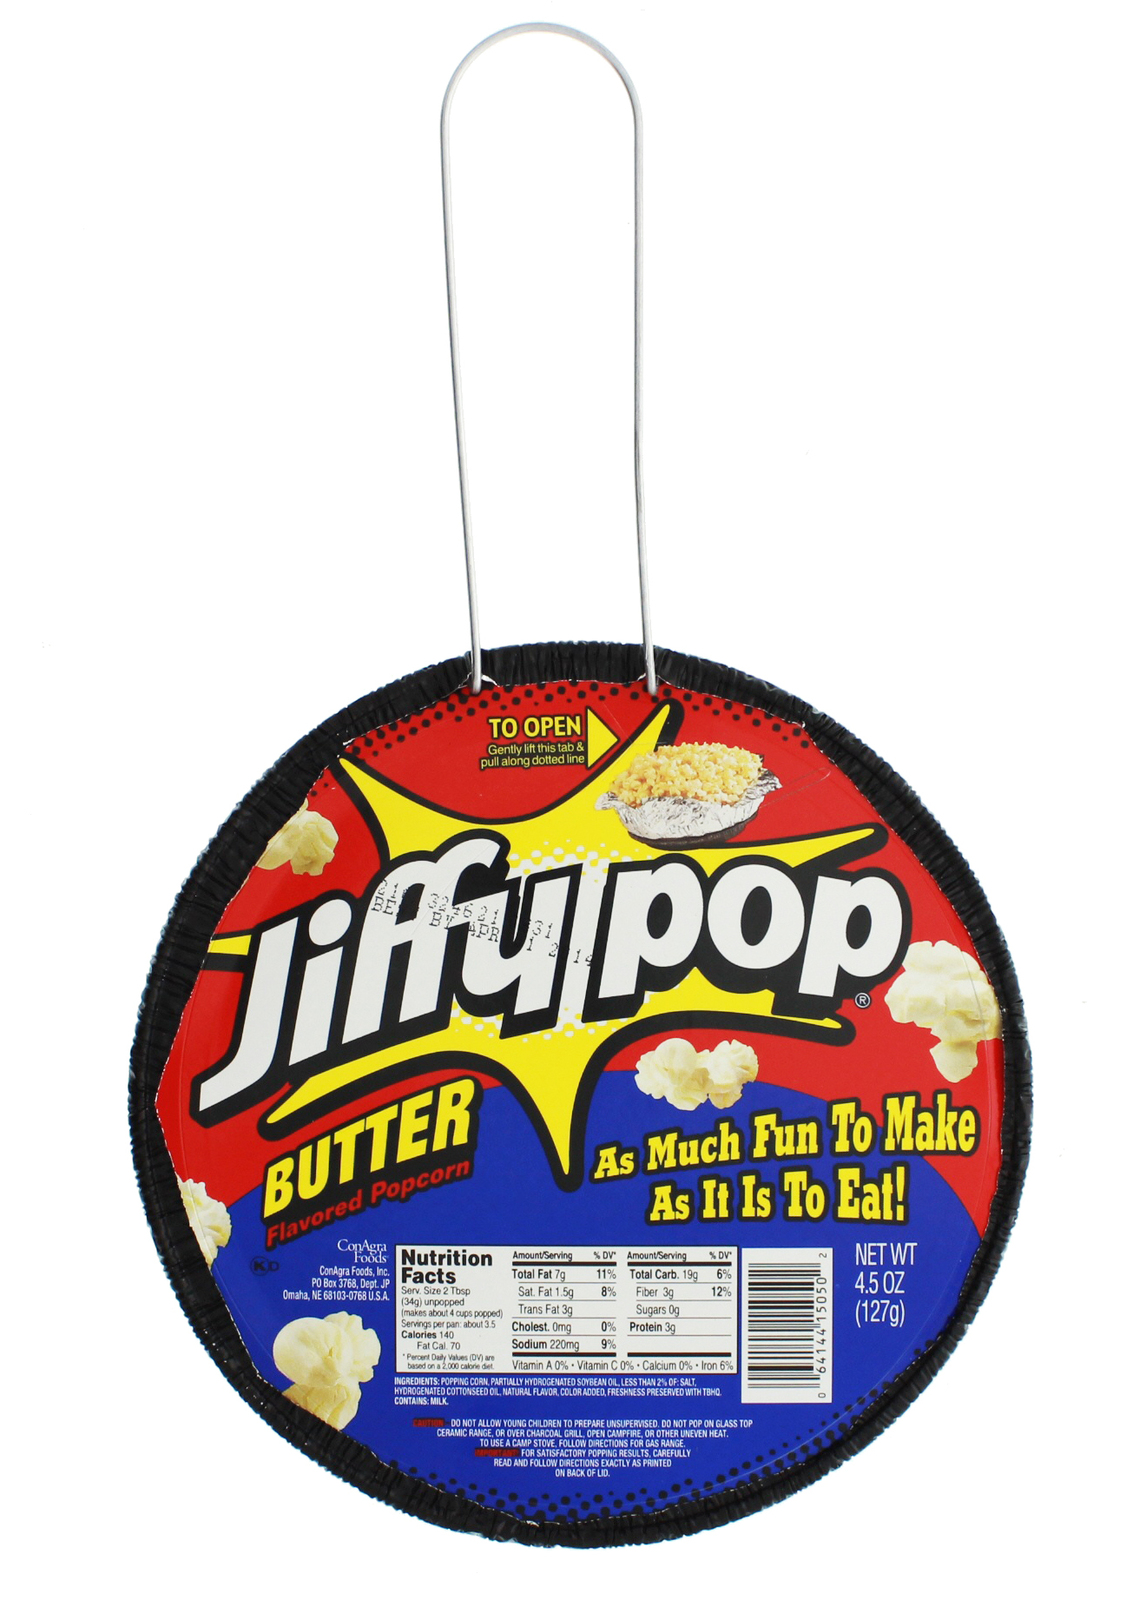 Jiffy Pop Butter Flavoured Popcorn (127g) image